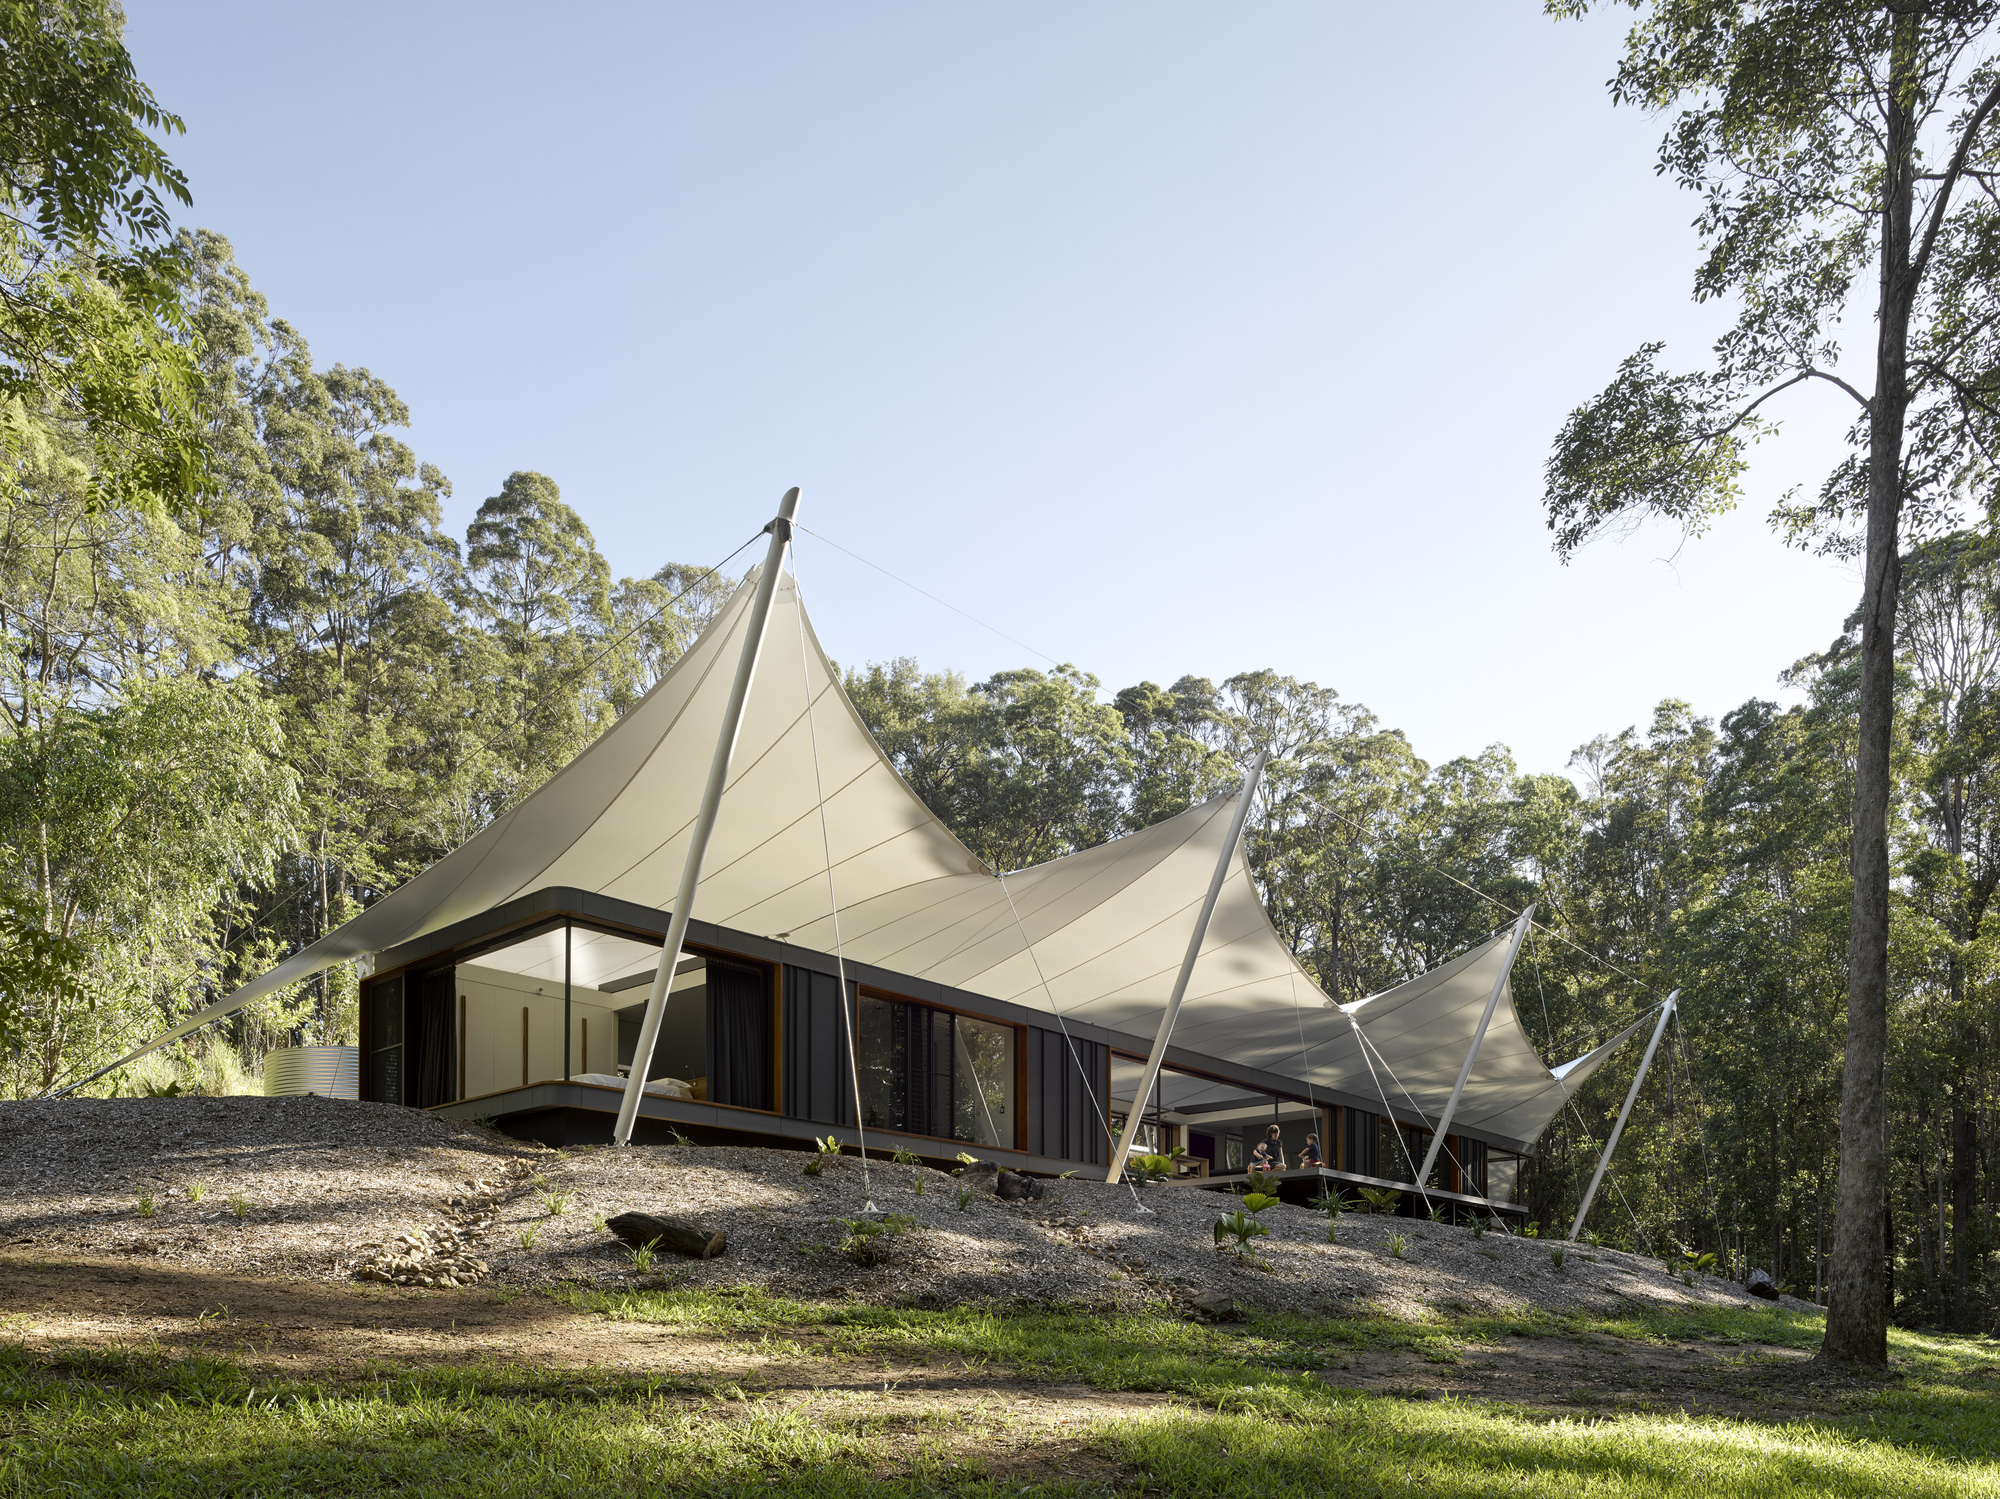 A unique tent house in eumundi australia Tent a house